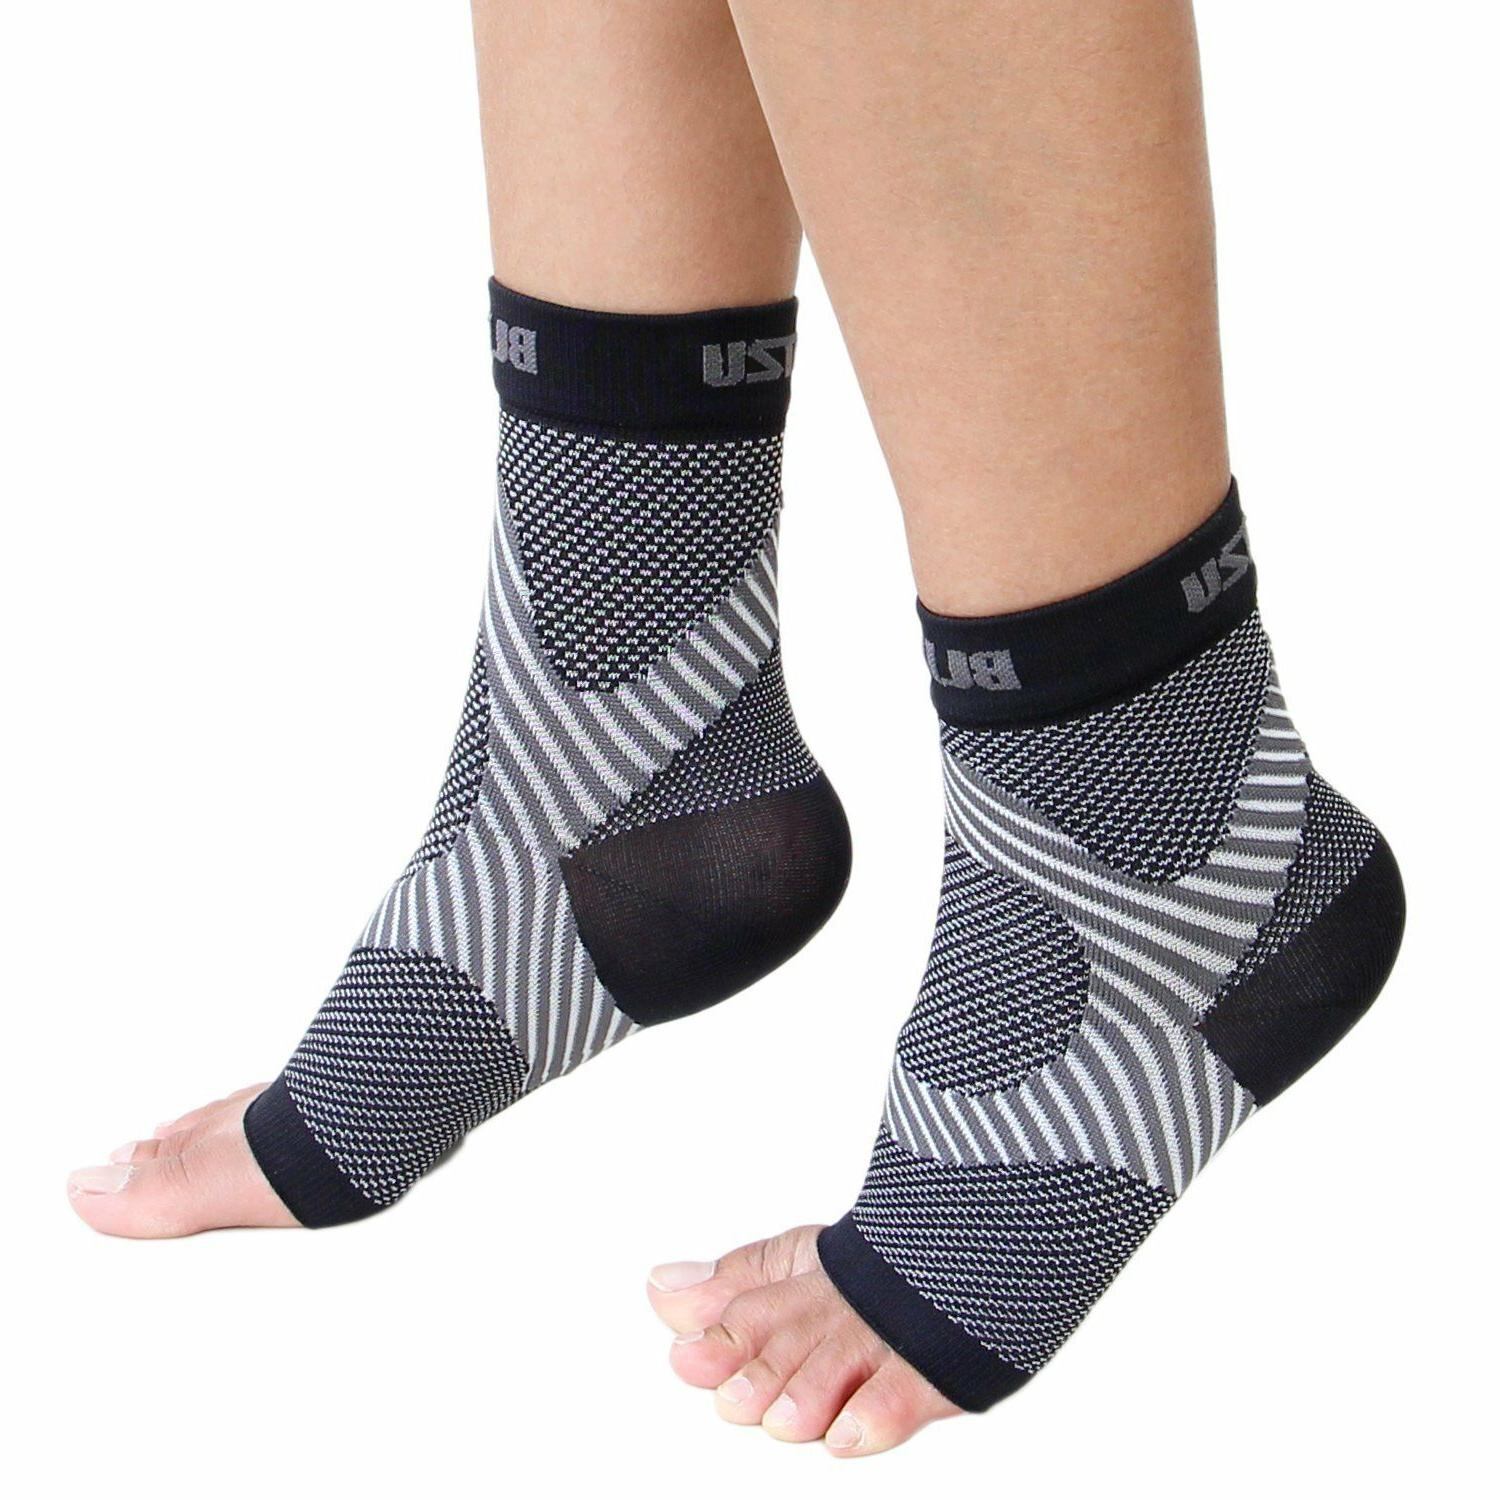 Plantar Arch Support Foot Care Sleeve